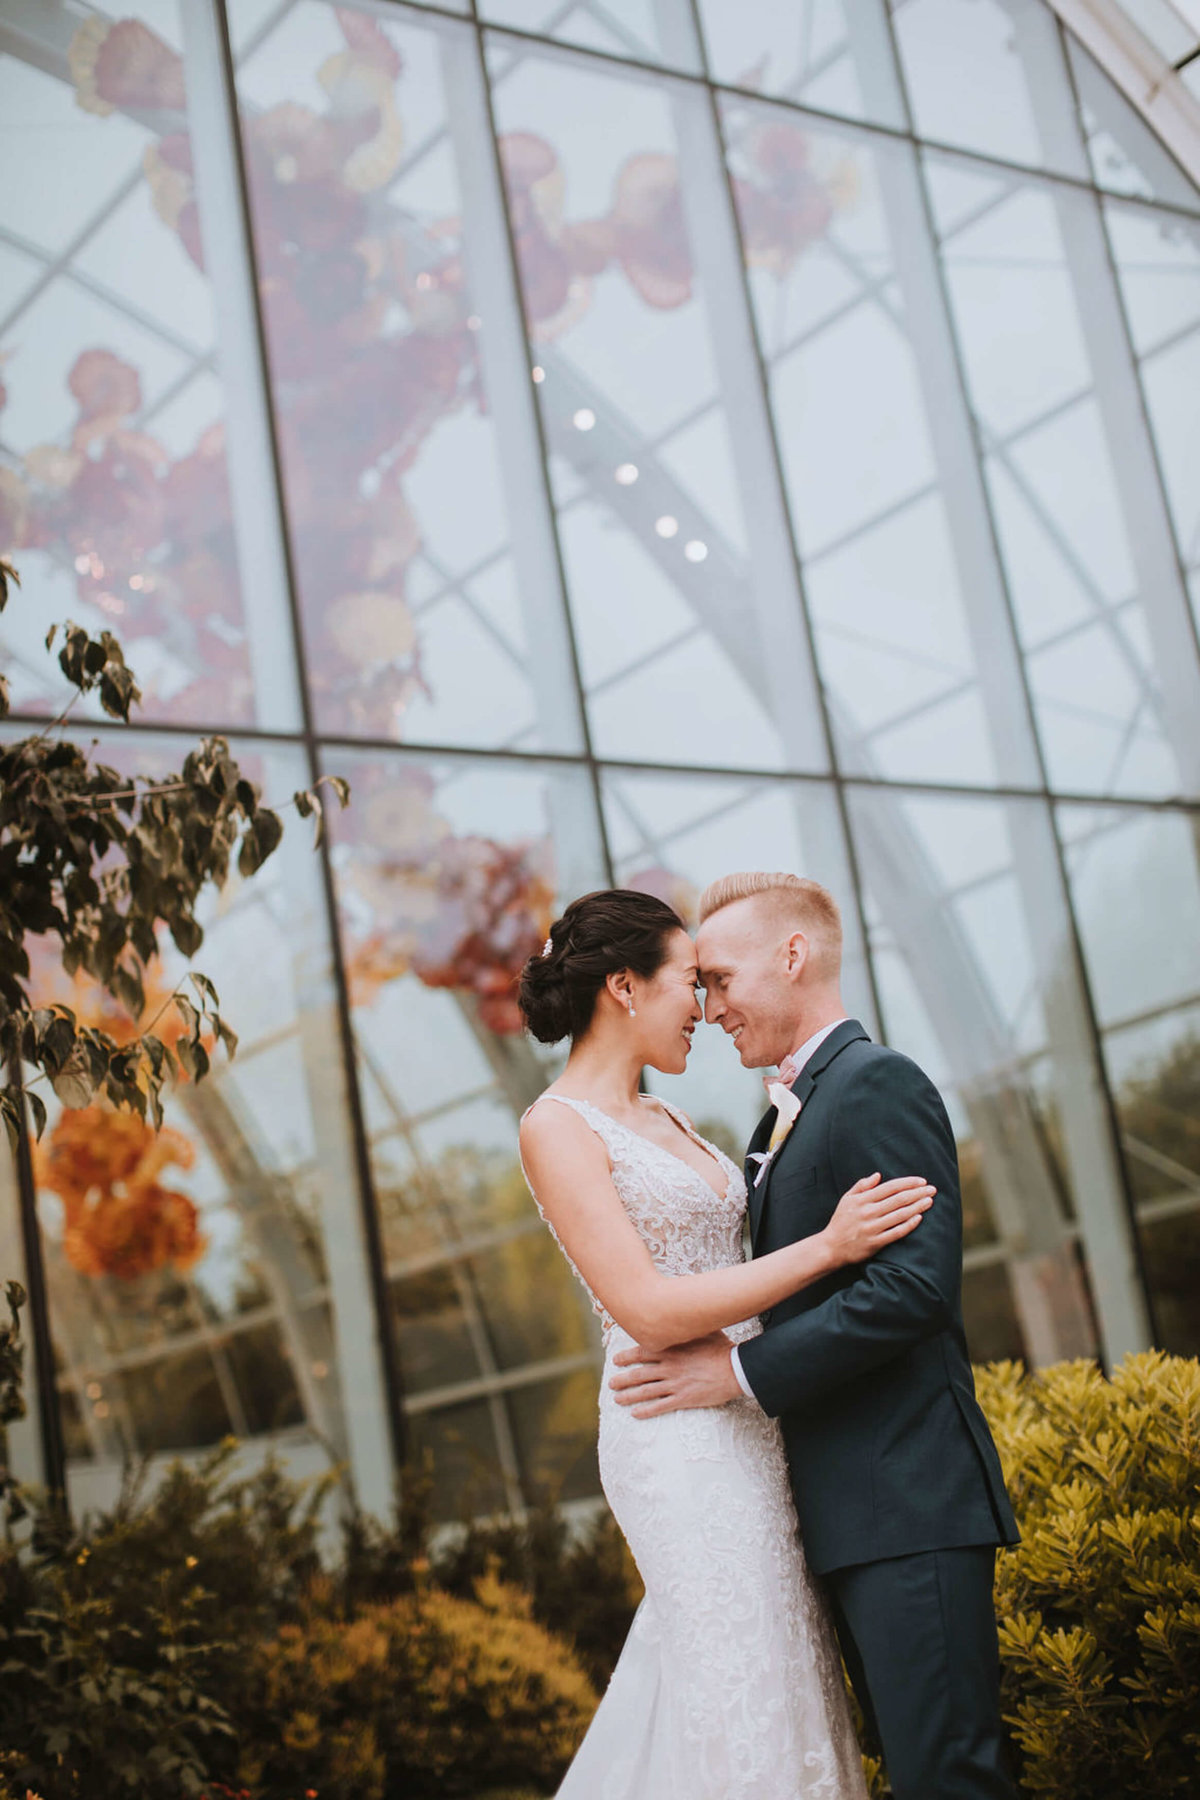 chihuly-garden-and-glass-wedding-sharel-eric-by-Adina-Preston-Photography-2019-163